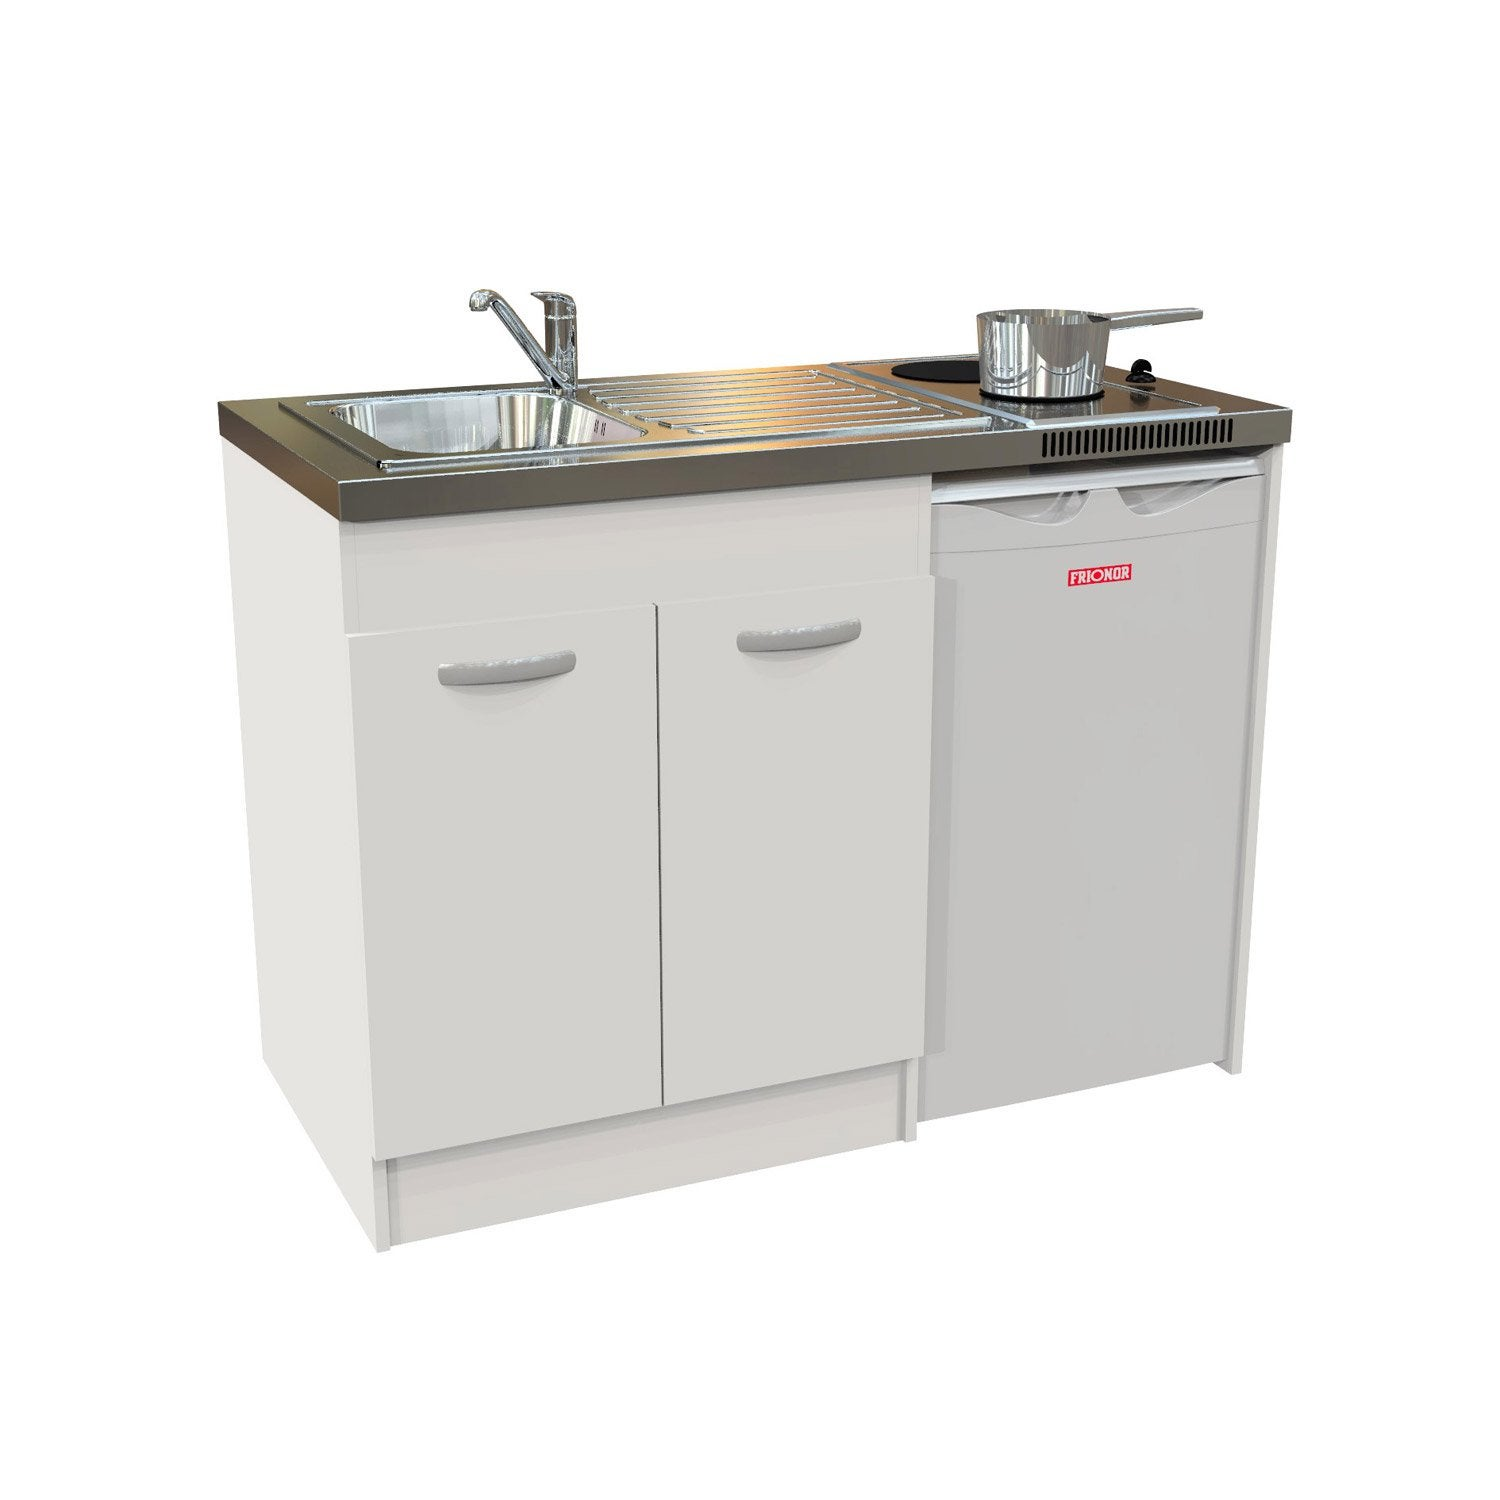 Kitchenette spring lectrique 120x60 cm blanc leroy merlin - Kitchenette leroy merlin ...